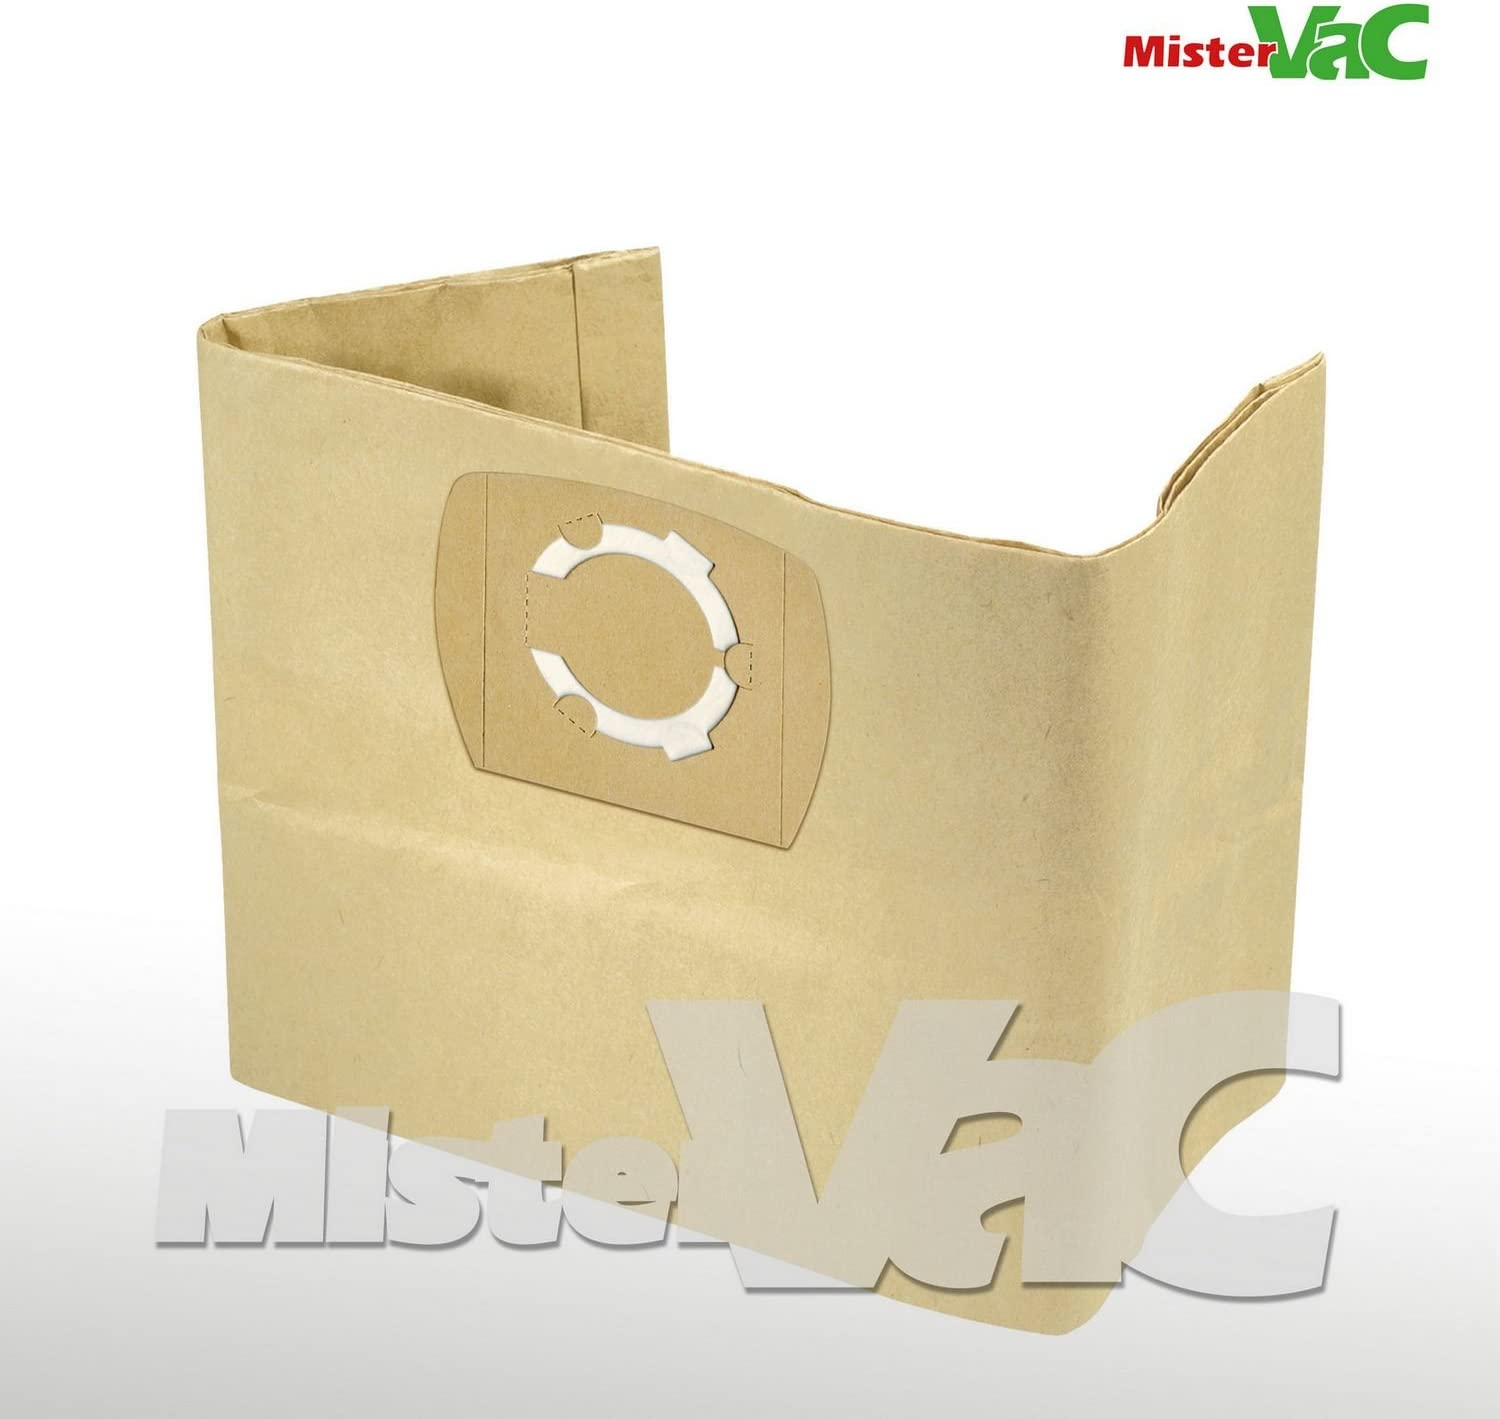 10 x Vacuum cleaner bags suitable for Parkside PNTS 1400/D1/wet//dry vacuum cleaner